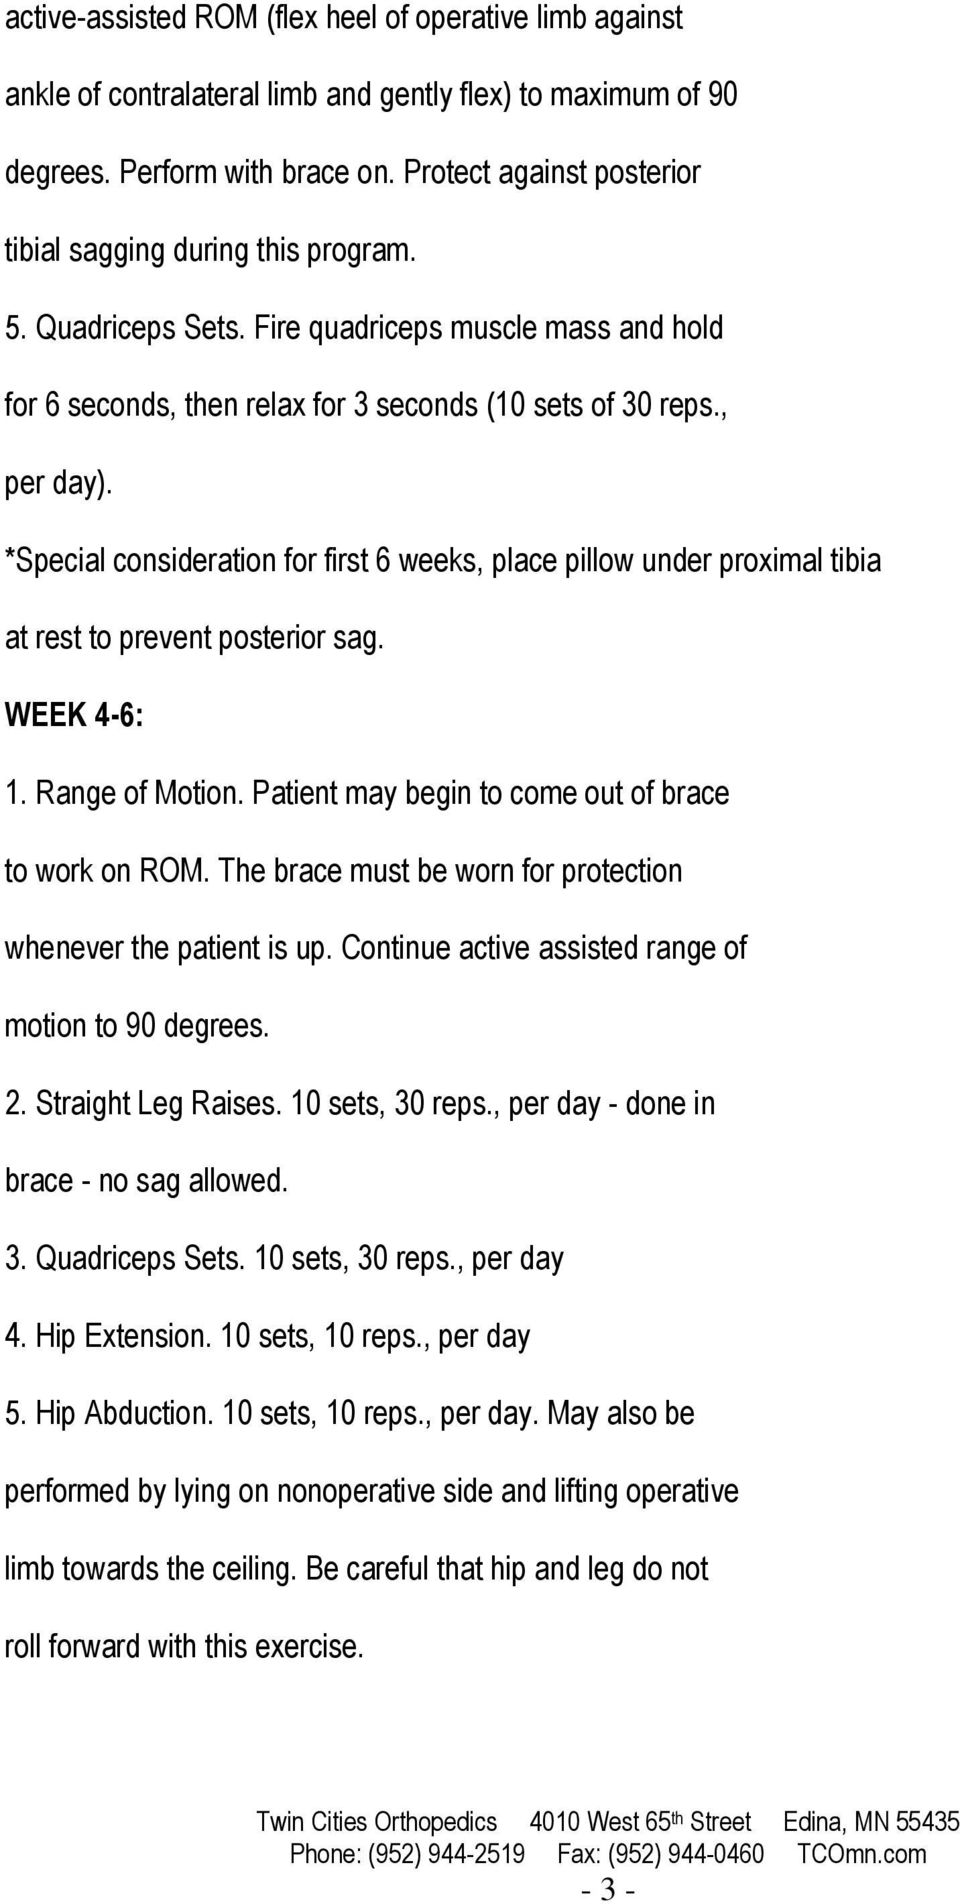 *Special consideration for first 6 weeks, place pillow under proximal tibia at rest to prevent posterior sag. WEEK 4-6: 1. Range of Motion. Patient may begin to come out of brace to work on ROM.